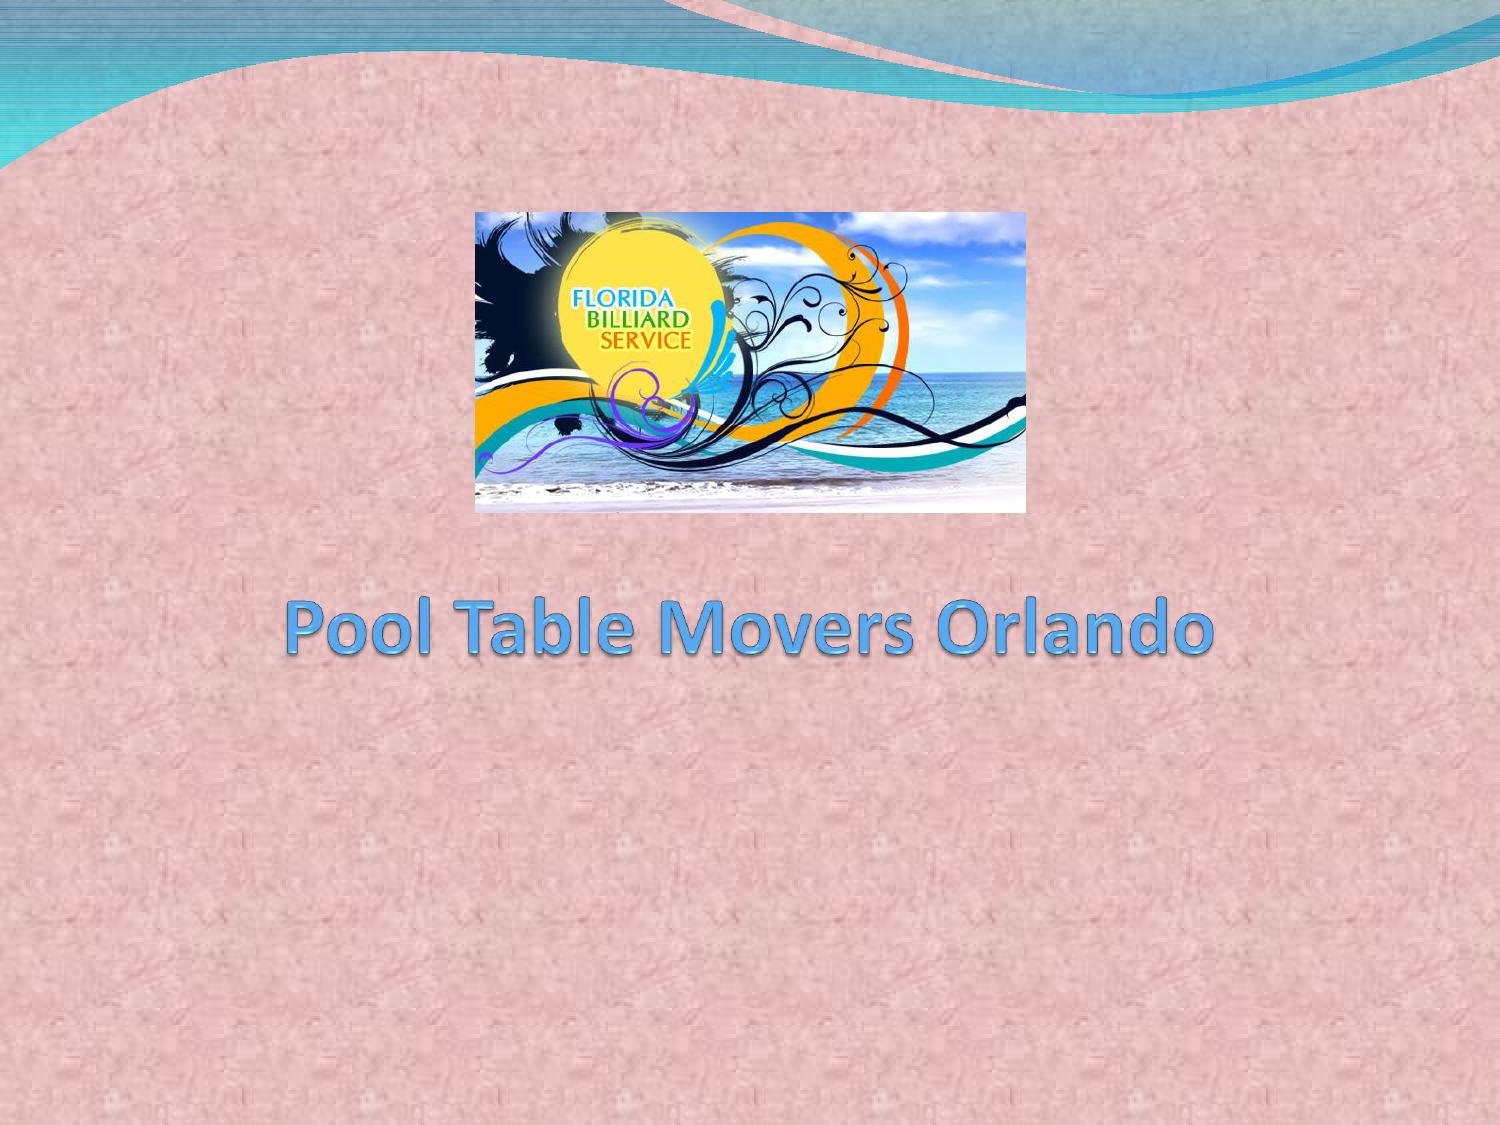 Pool Table Movers Orlando By Floridabilliardservice   Issuu